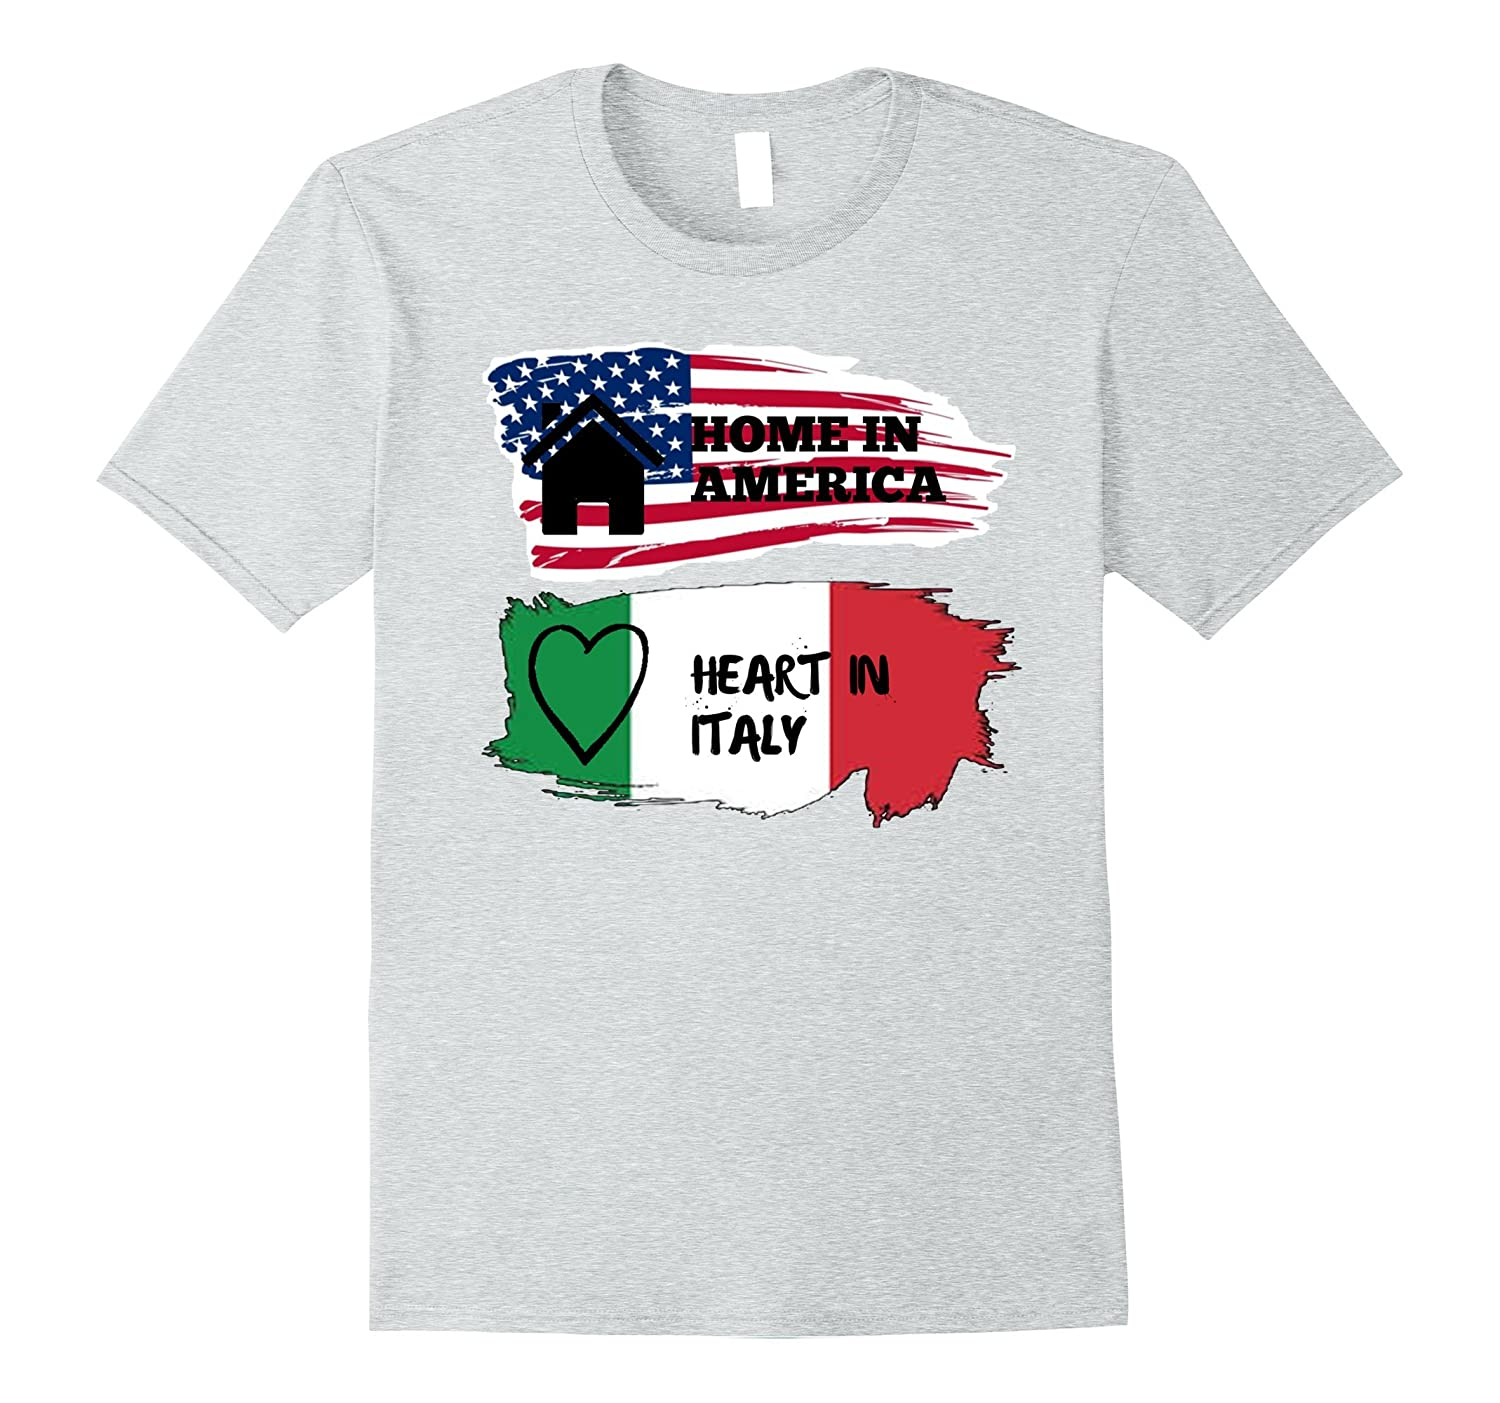 43761912b Cui Home in America Heart in Italy T-Shirt-PL – Polozatee